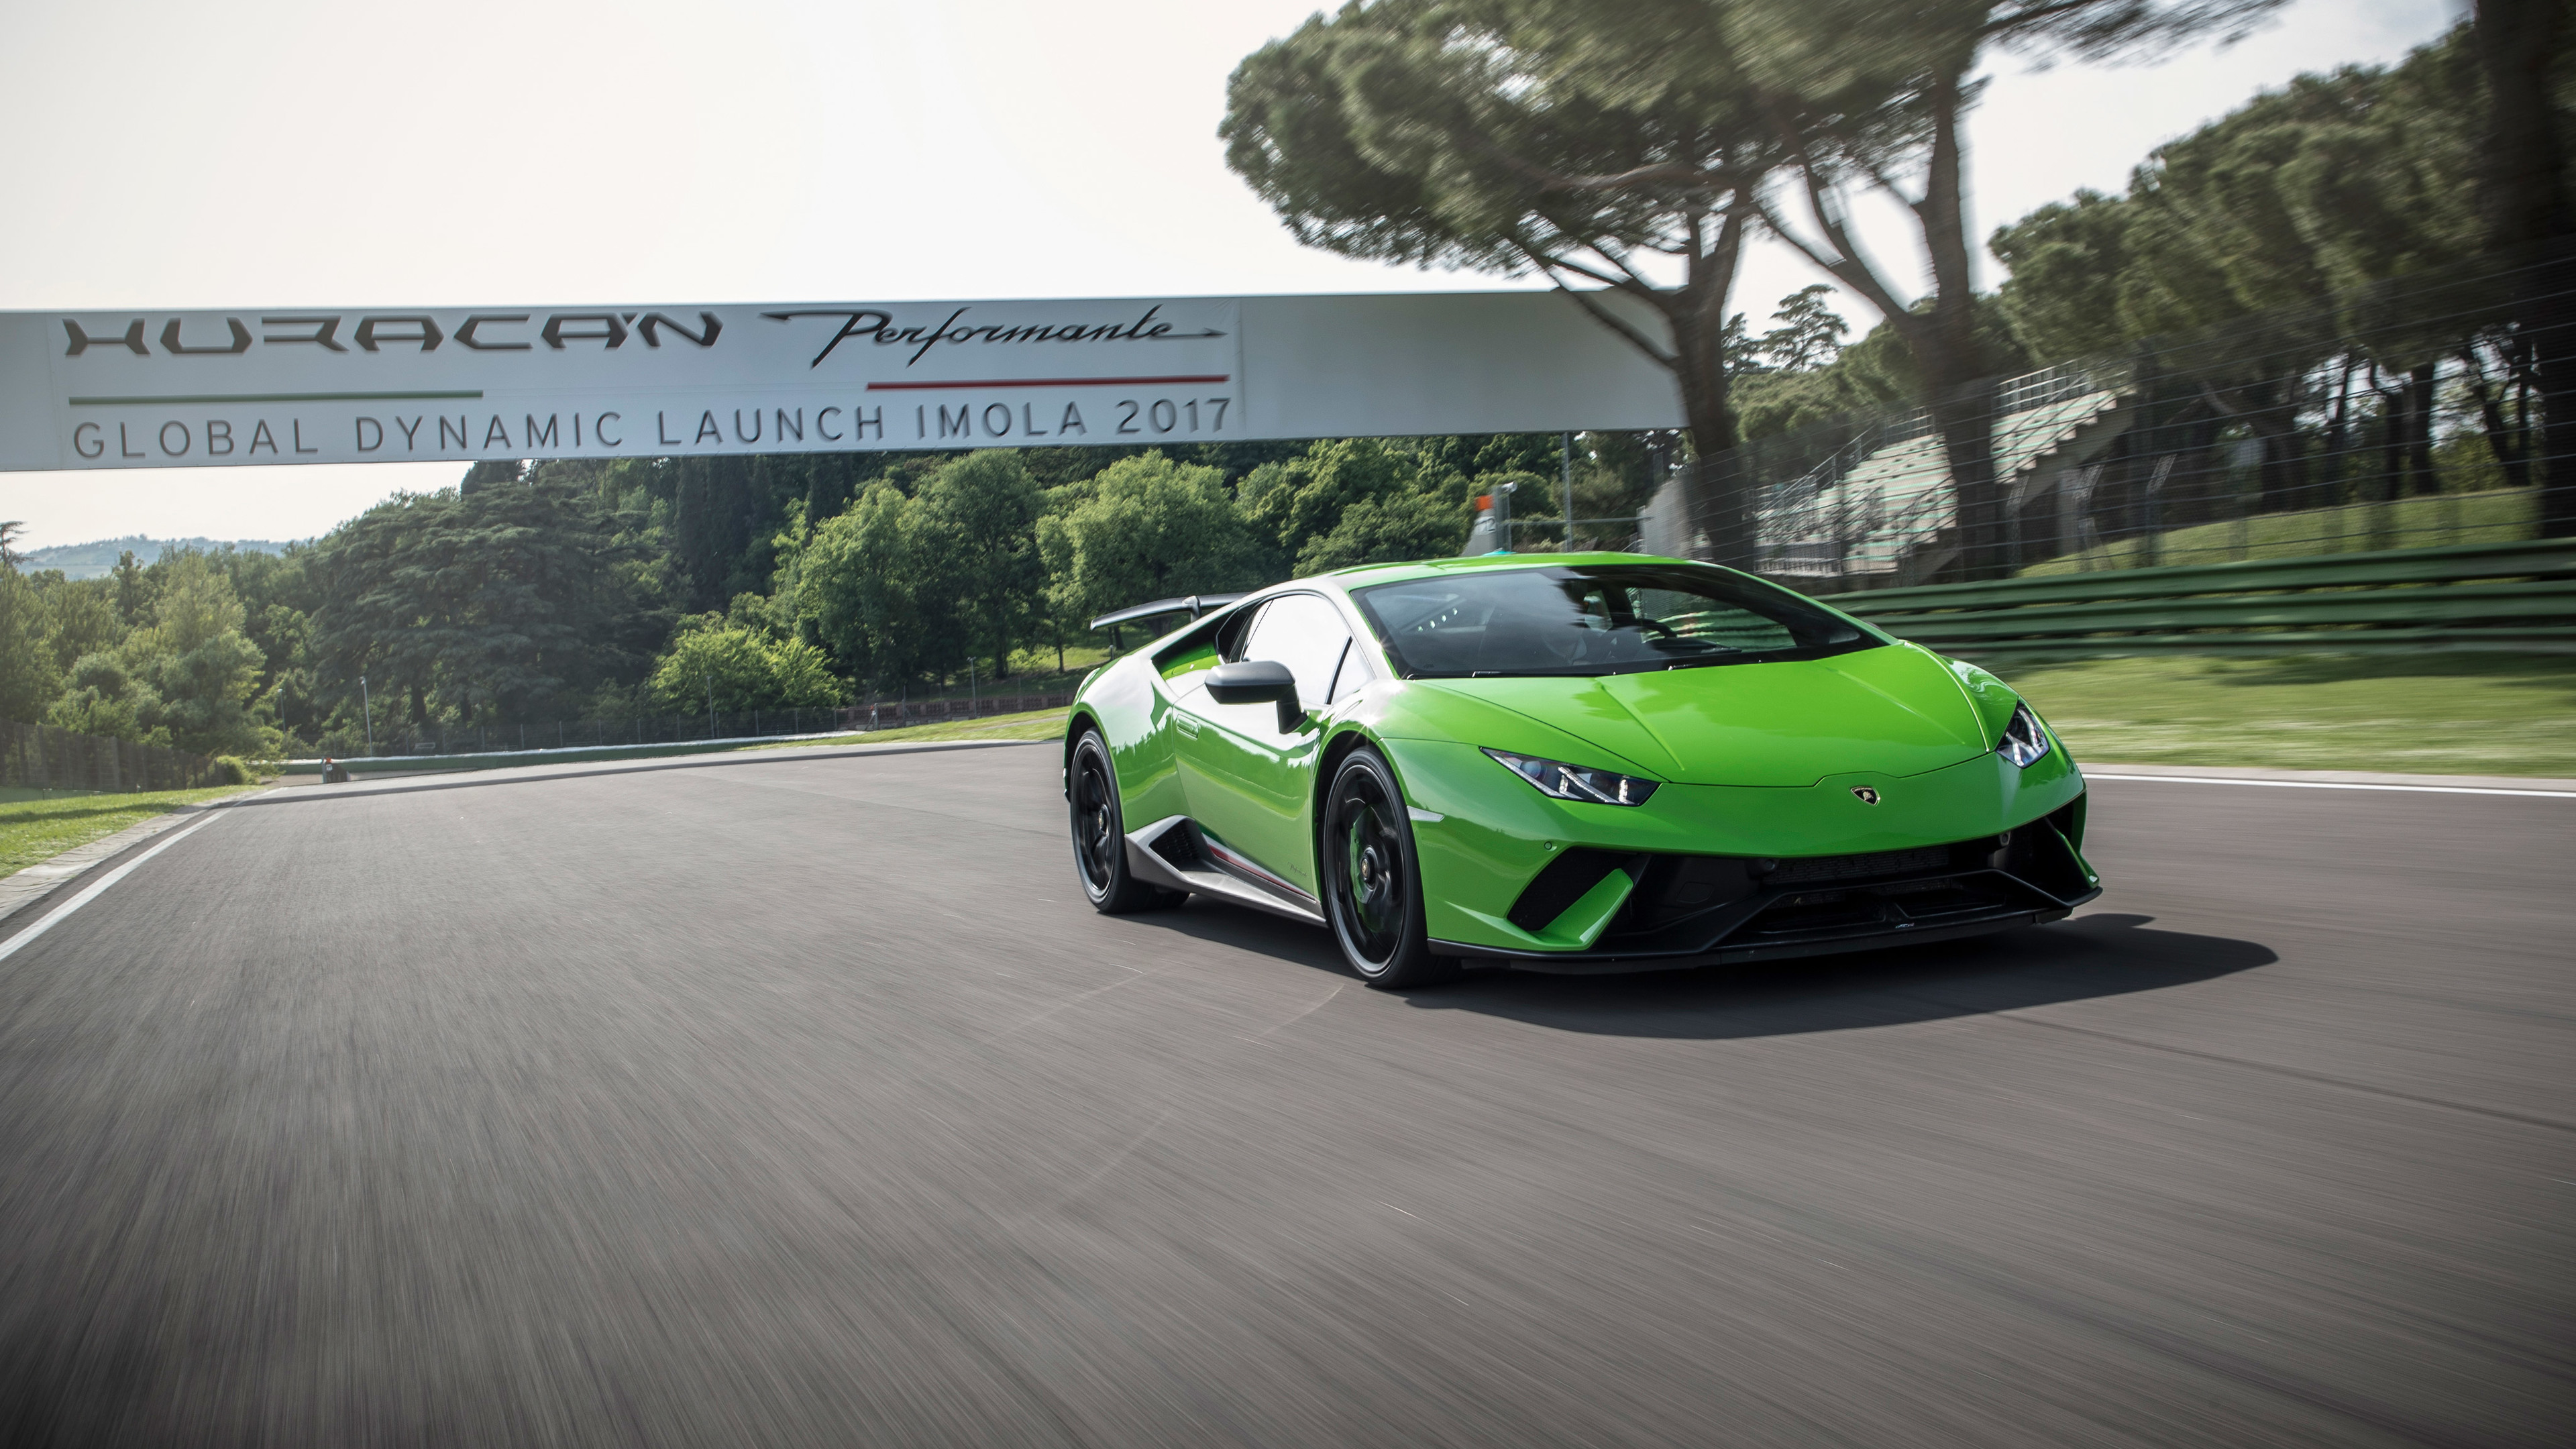 Wallpaper 4k Lamborghini Huracan Performante Super Car 2018 Cars